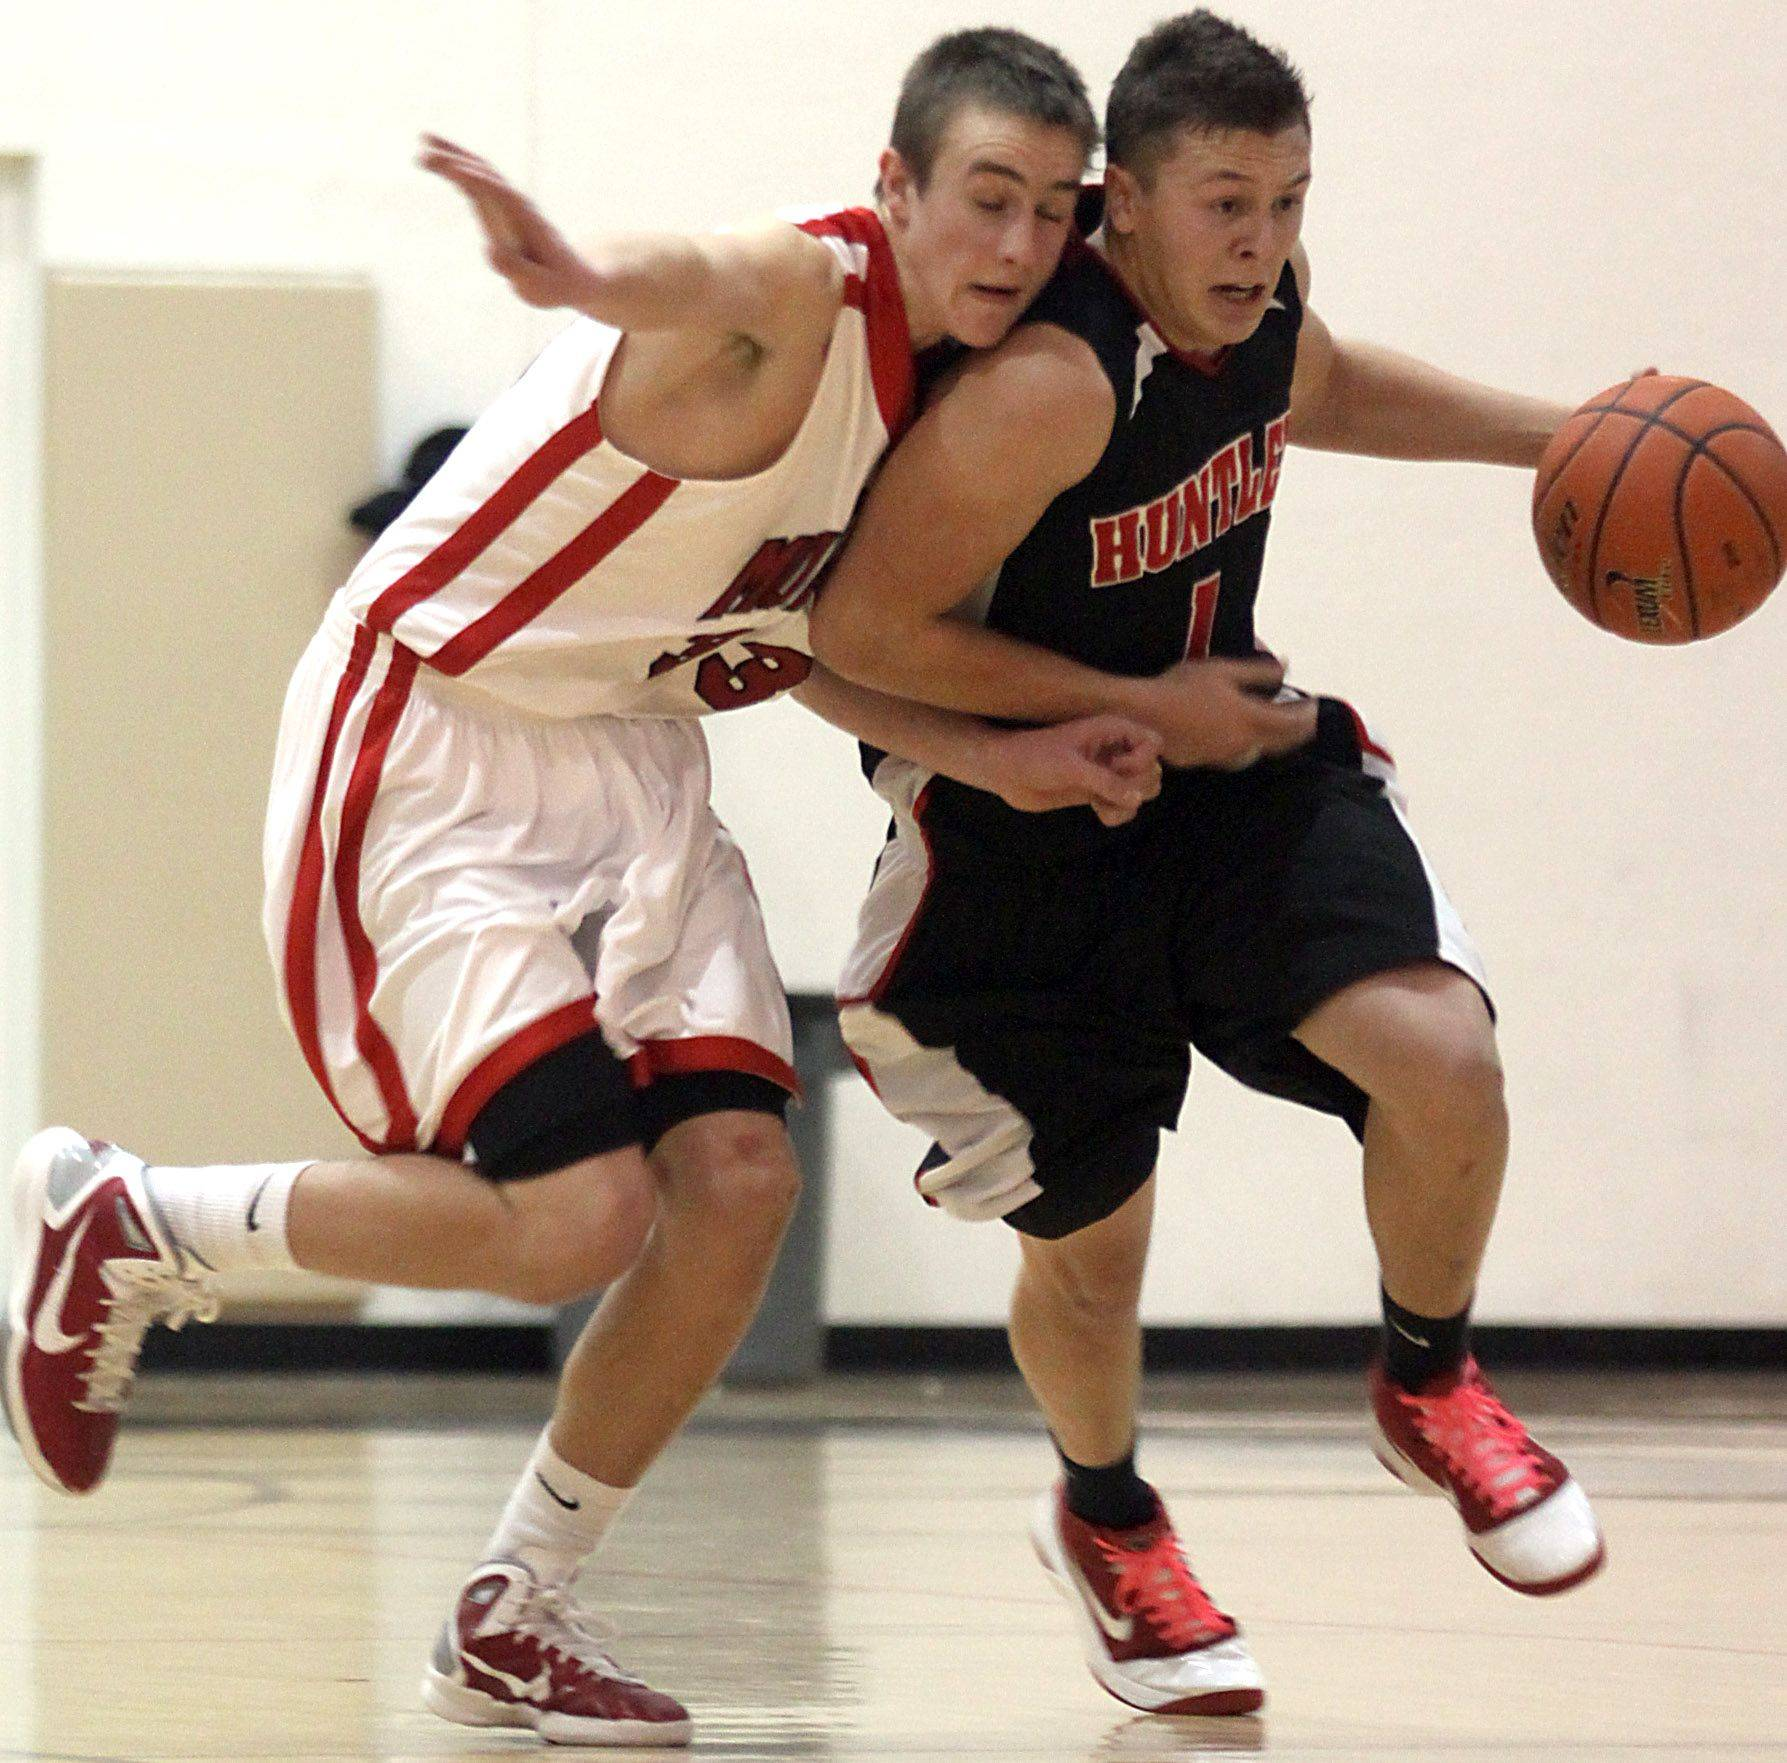 Dylan Neukirch of Huntley, right, and Sean O'Brien of Mundelein race downcourt during the title game of the Jacobs Holiday Classic Boys Basketball Tournament in Algonquin on Thursday night.